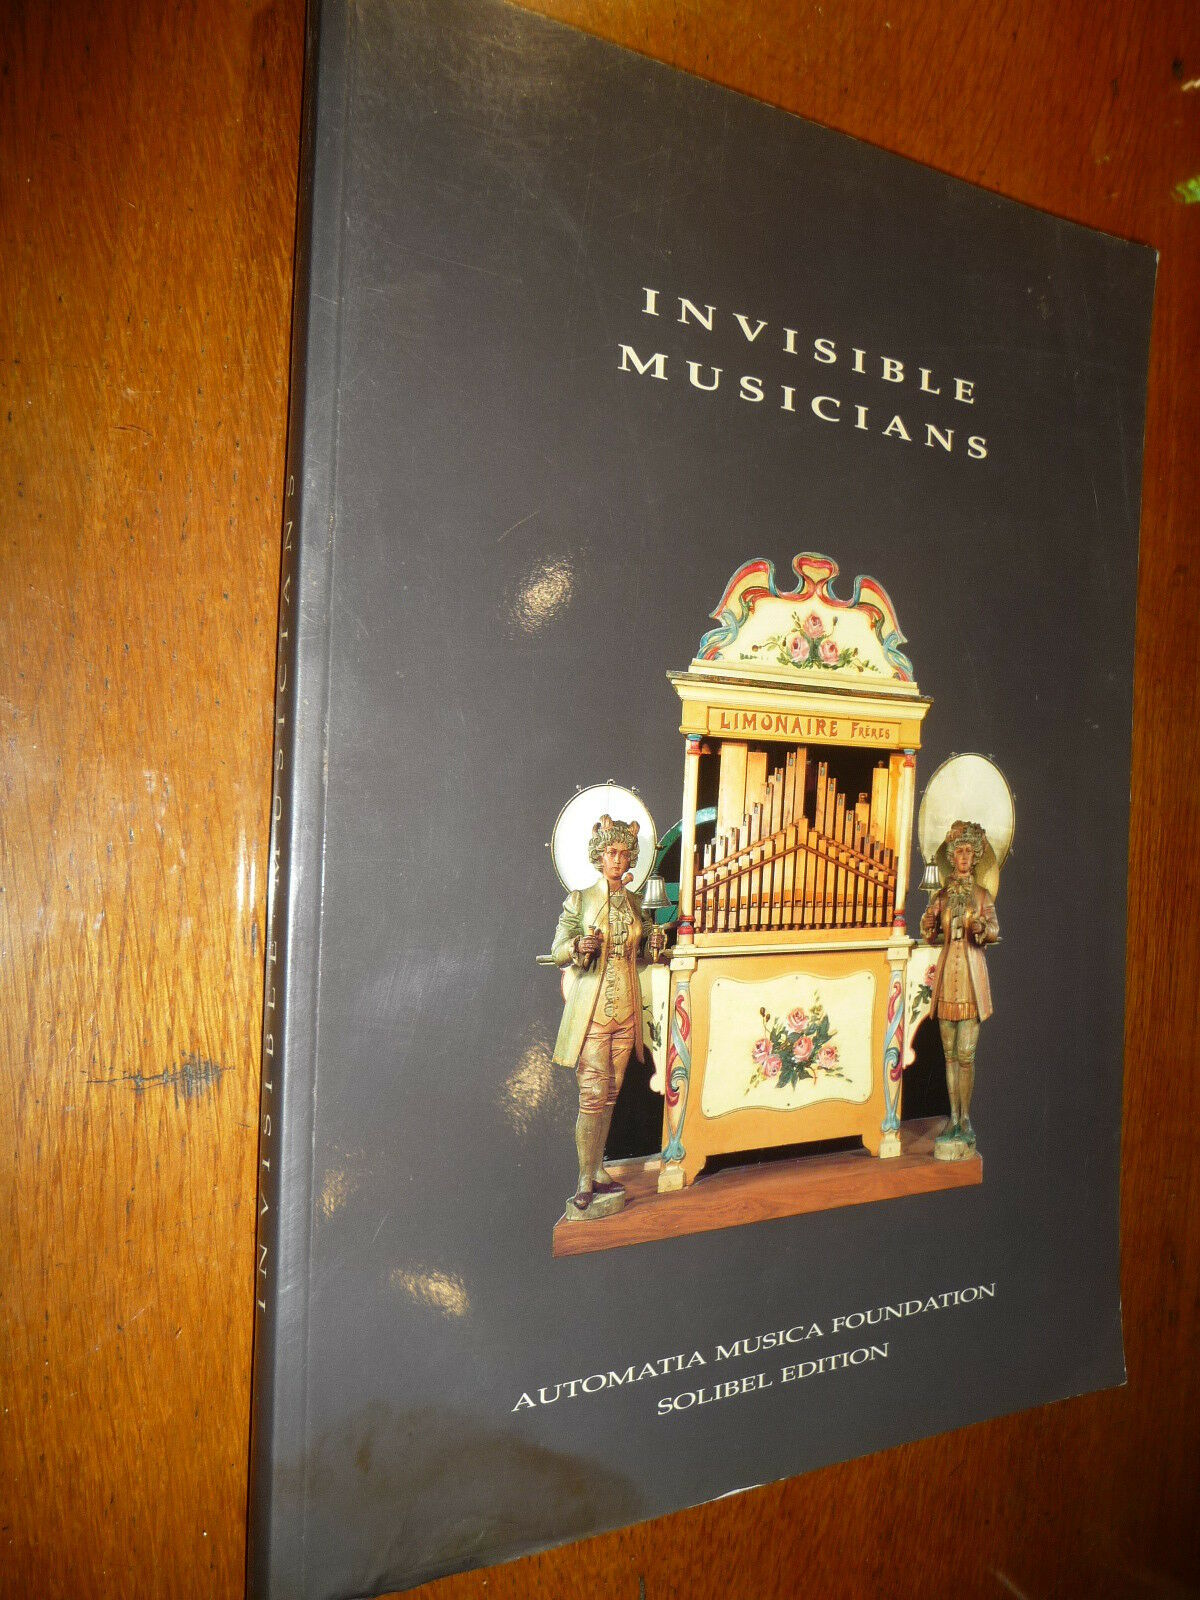 INVISIBLE MUSICIANS CATALOGO MOSTRA AUTOMI MUSICALI FONOGRAFI YUKEBOX 3 LINGUE